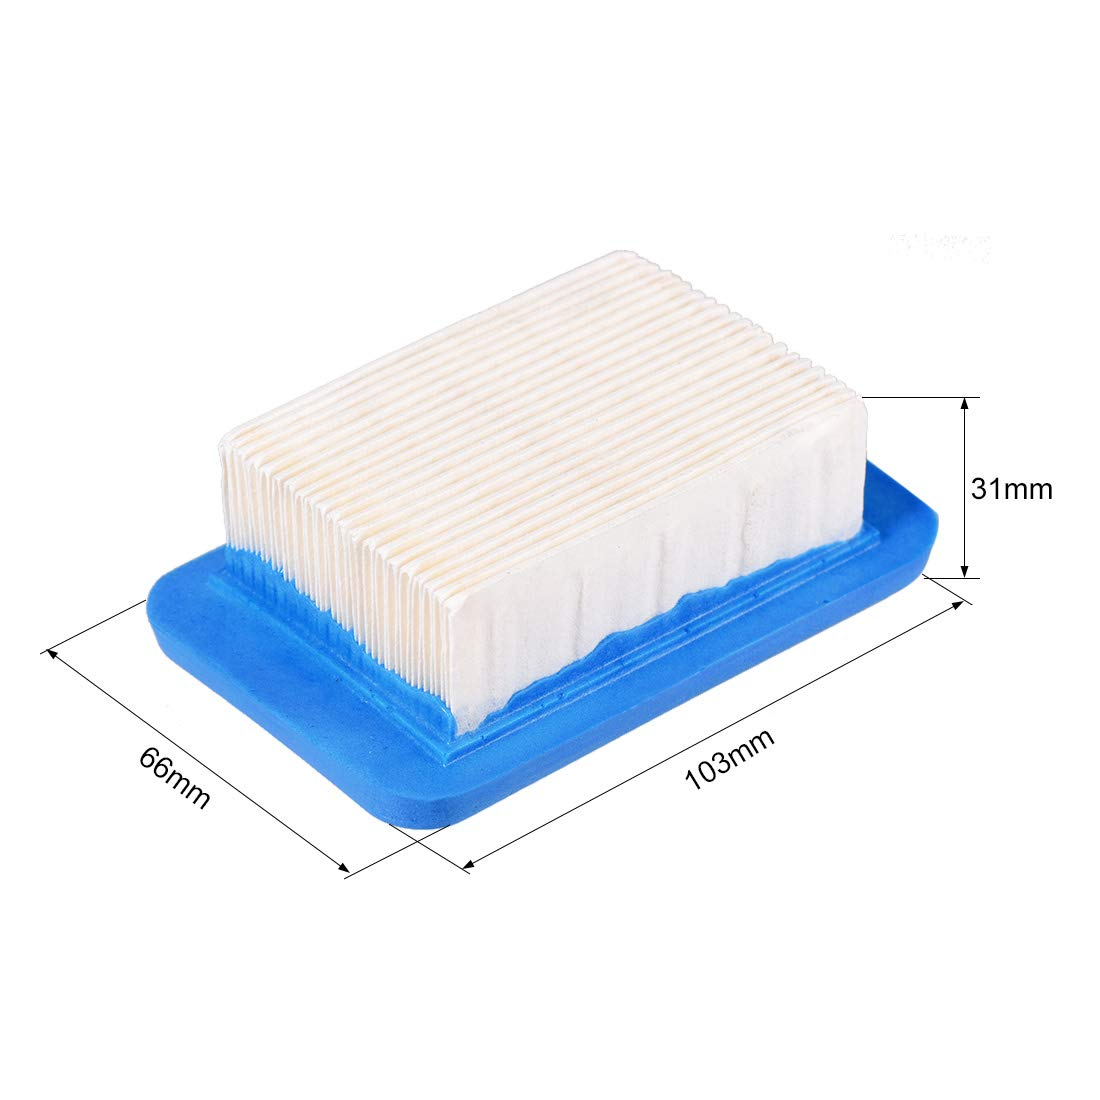 uxcell 2 Pcs A226000032 Air Filter for Echo Leaf Blower PB755ST PB500T PB403 PB403H PB403T PB413H PB413T PB500H PB603 PB611 PB620 PB620ST PB650